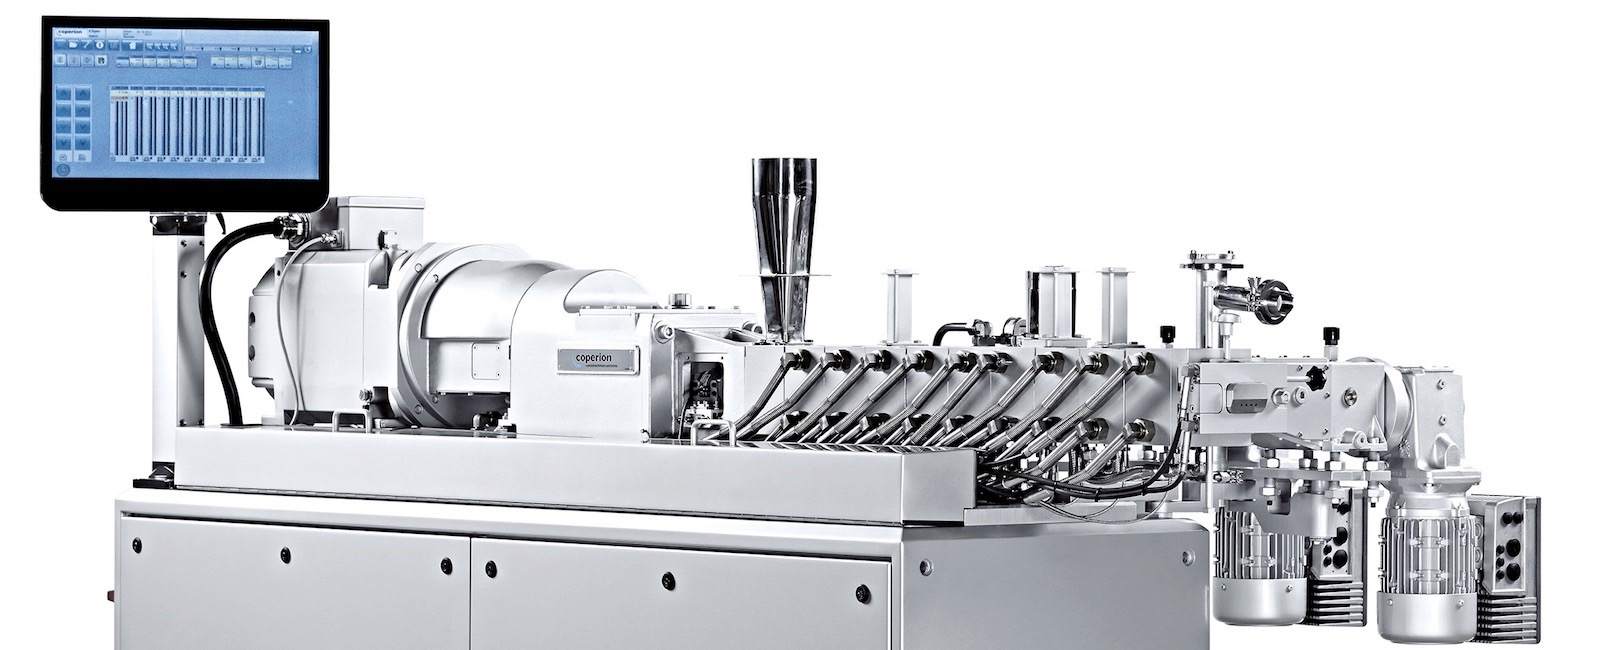 Coperion: Delta Kunststoffe AG expands its production by two ZSK Twin Screw Extruders